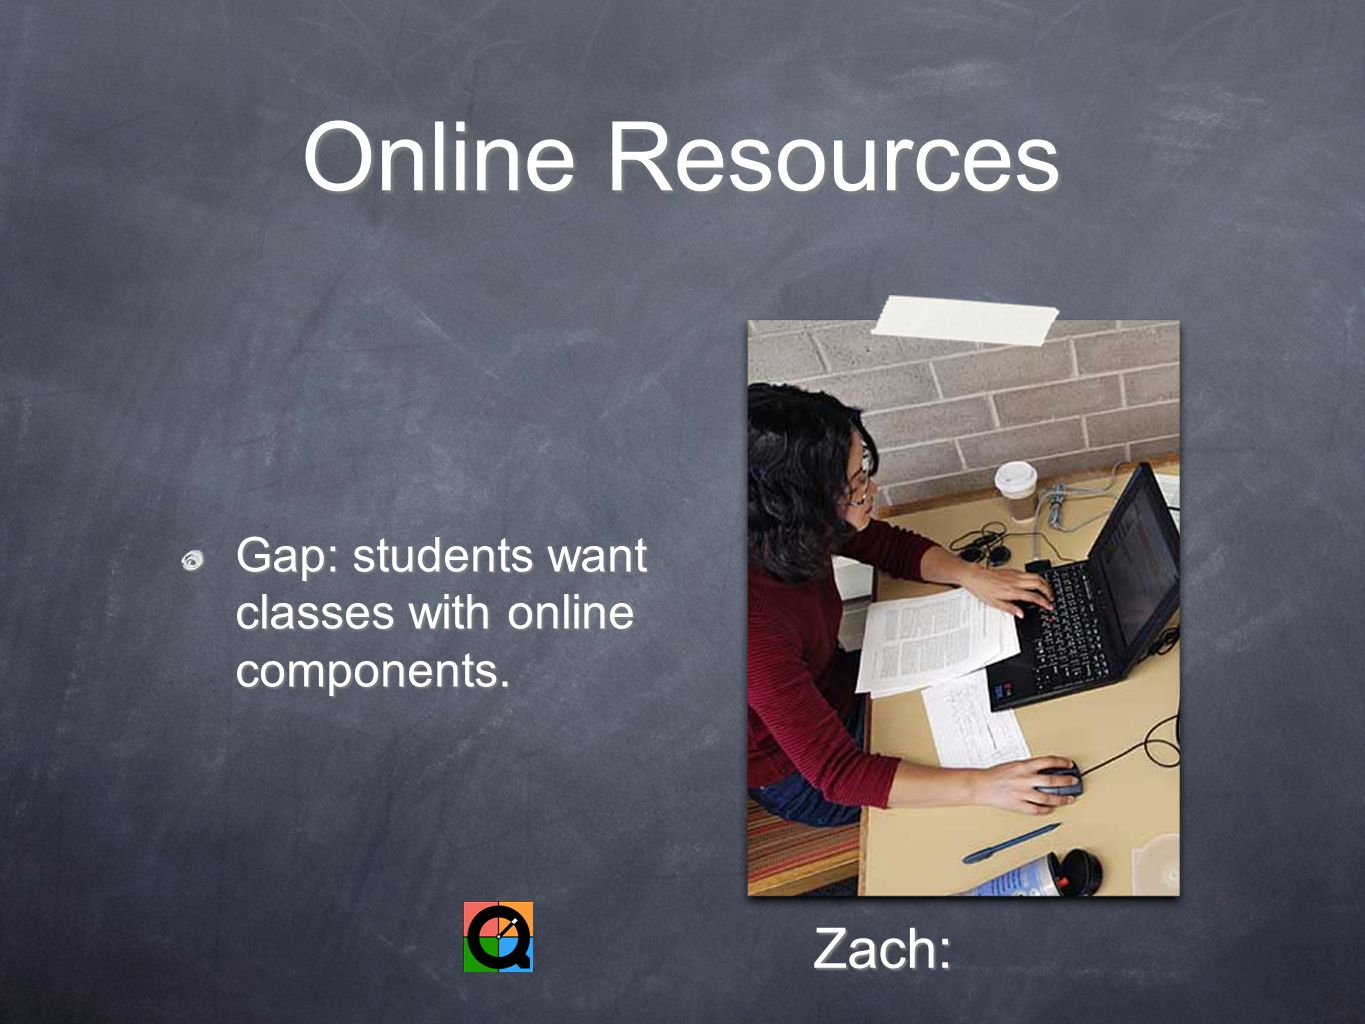 Online Resources Gap: students want classes with online components. Zach: